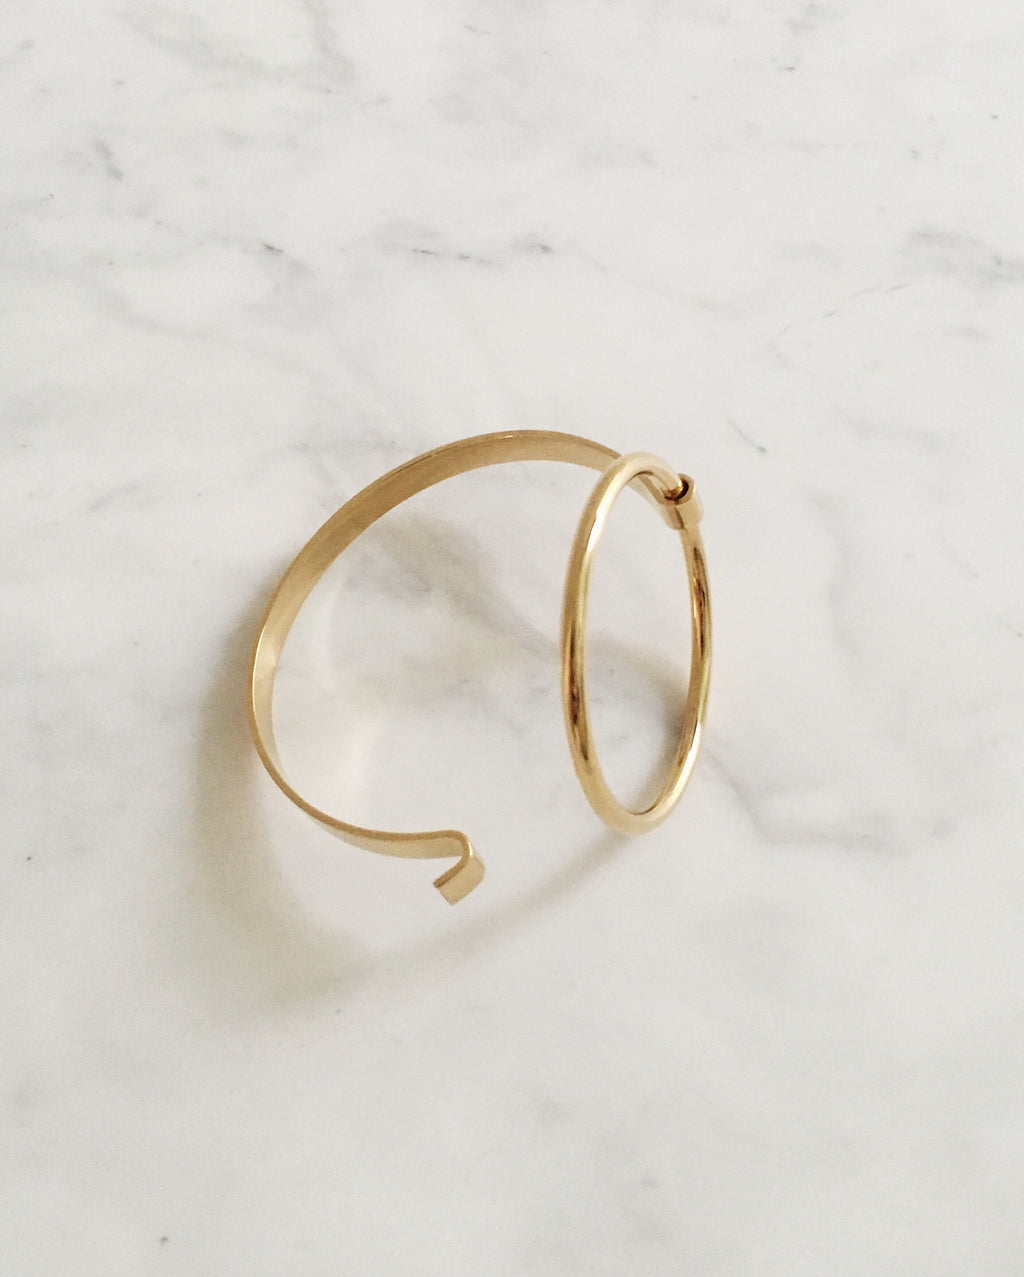 Easy hook-on clasp to wear circle bangle - The Hexad Jewelry